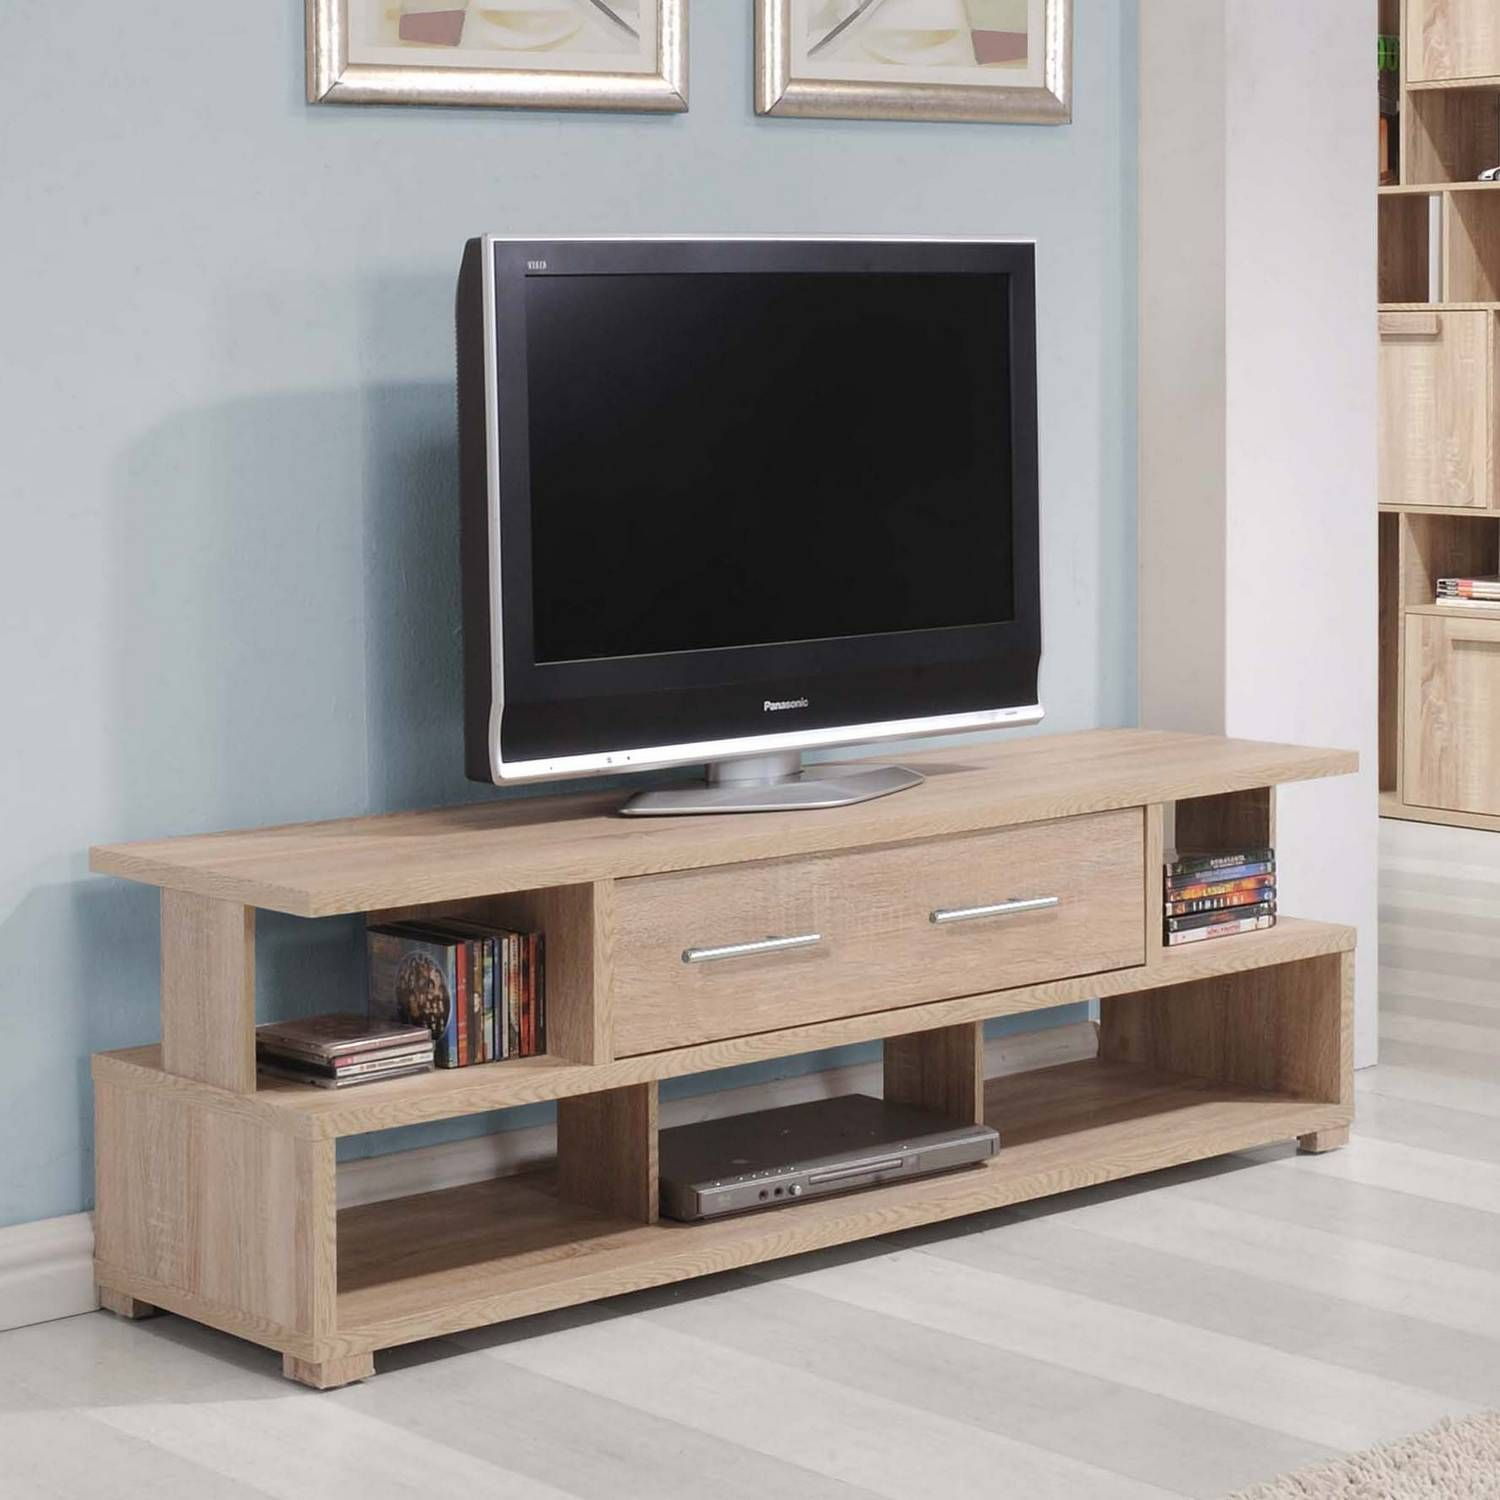 The Range Living Room Furniture Apollo Tv Unit Furniture The Range Interior Pinterest